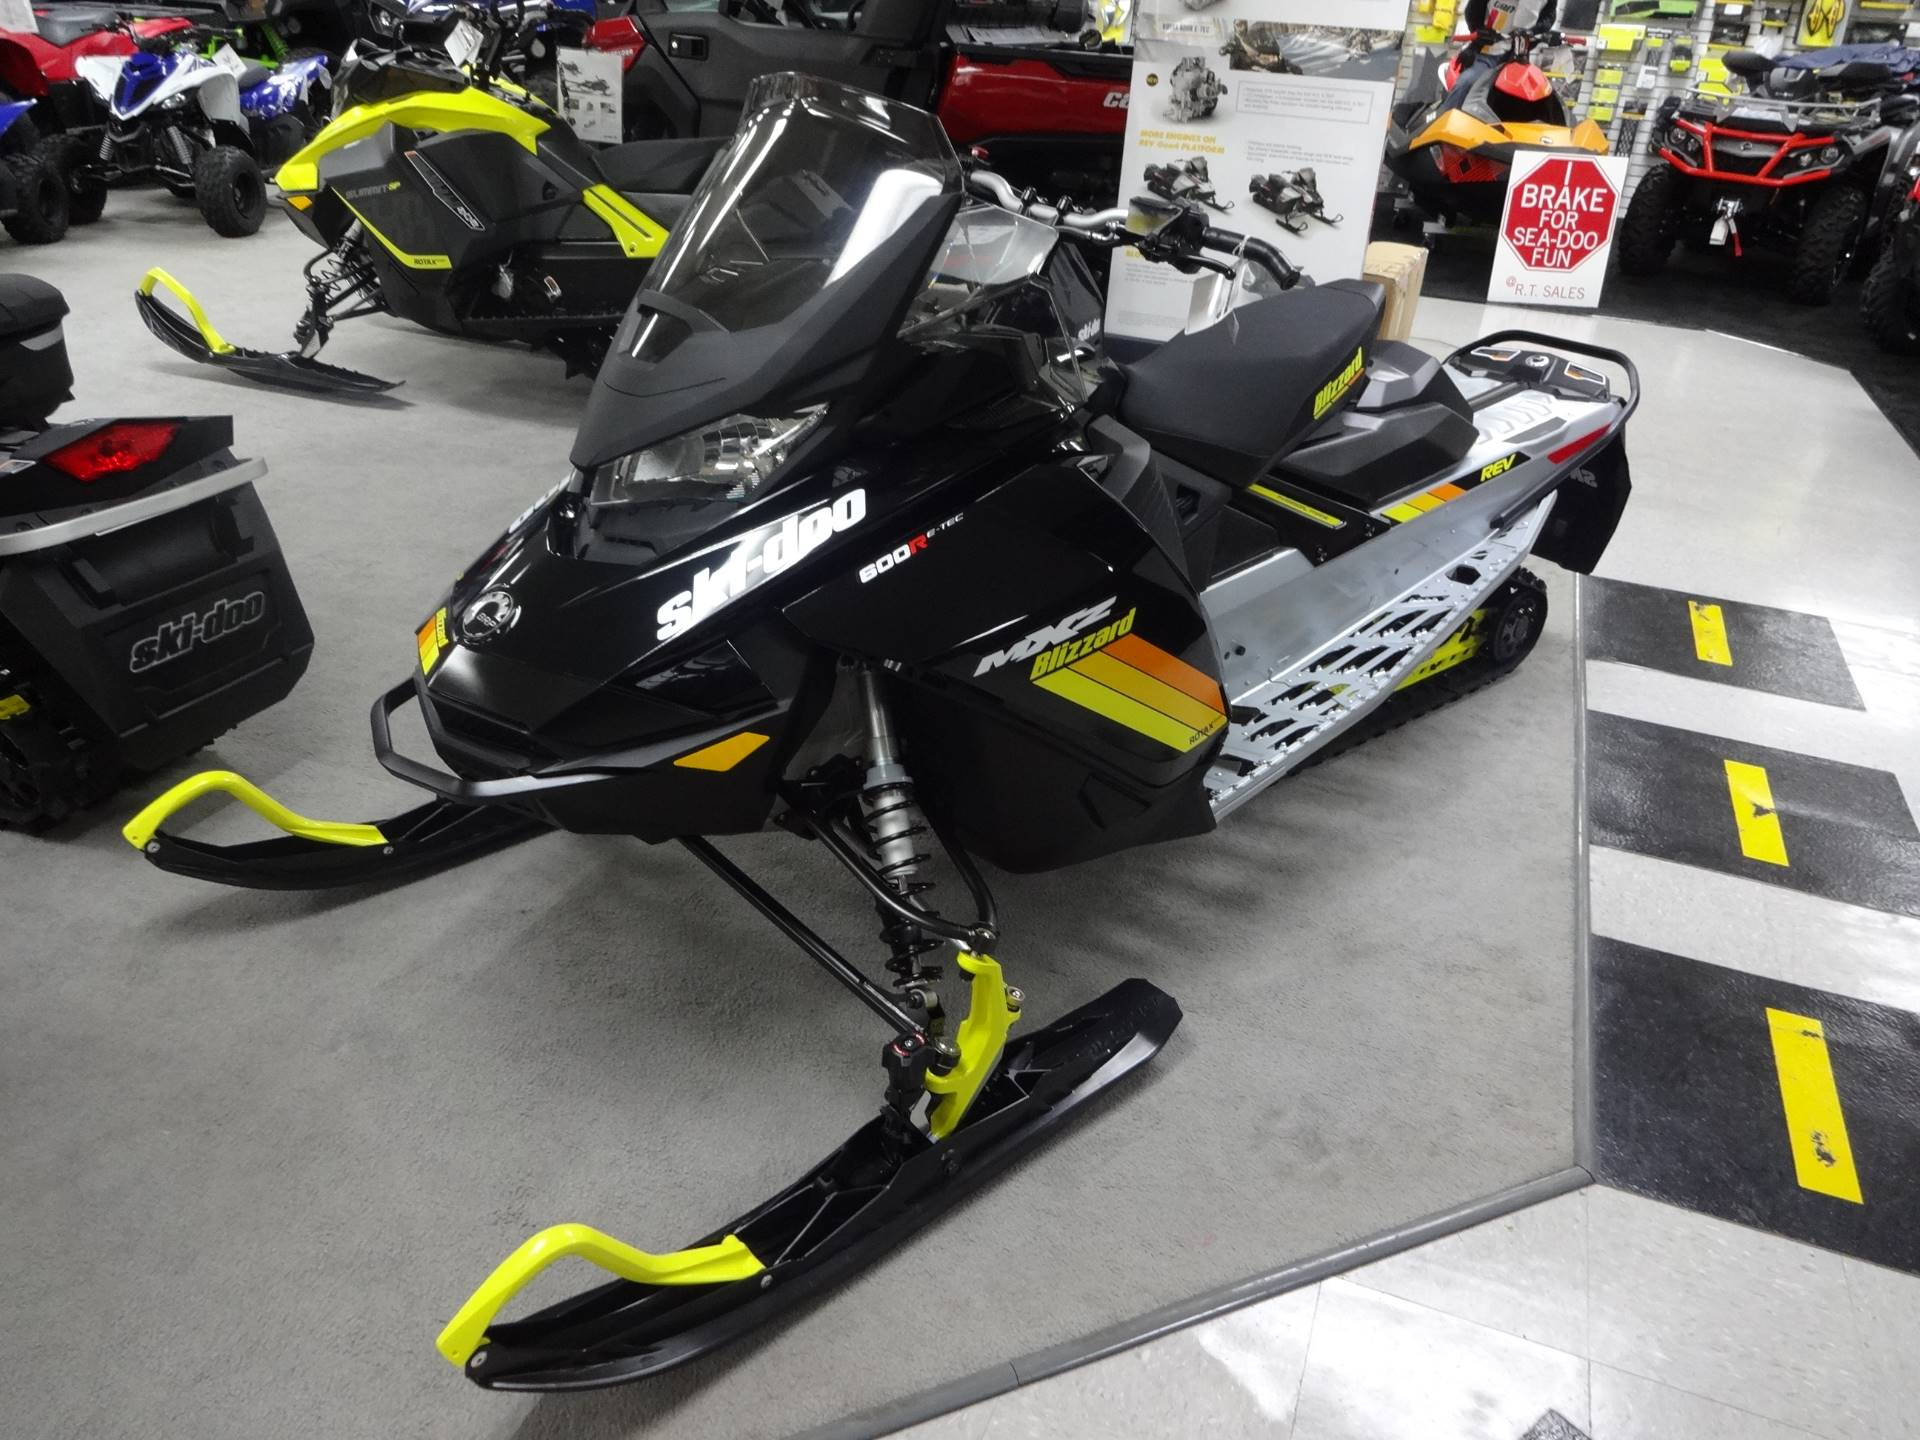 2019 Ski-Doo MXZ Blizzard 600R E-Tec in Zulu, Indiana - Photo 1